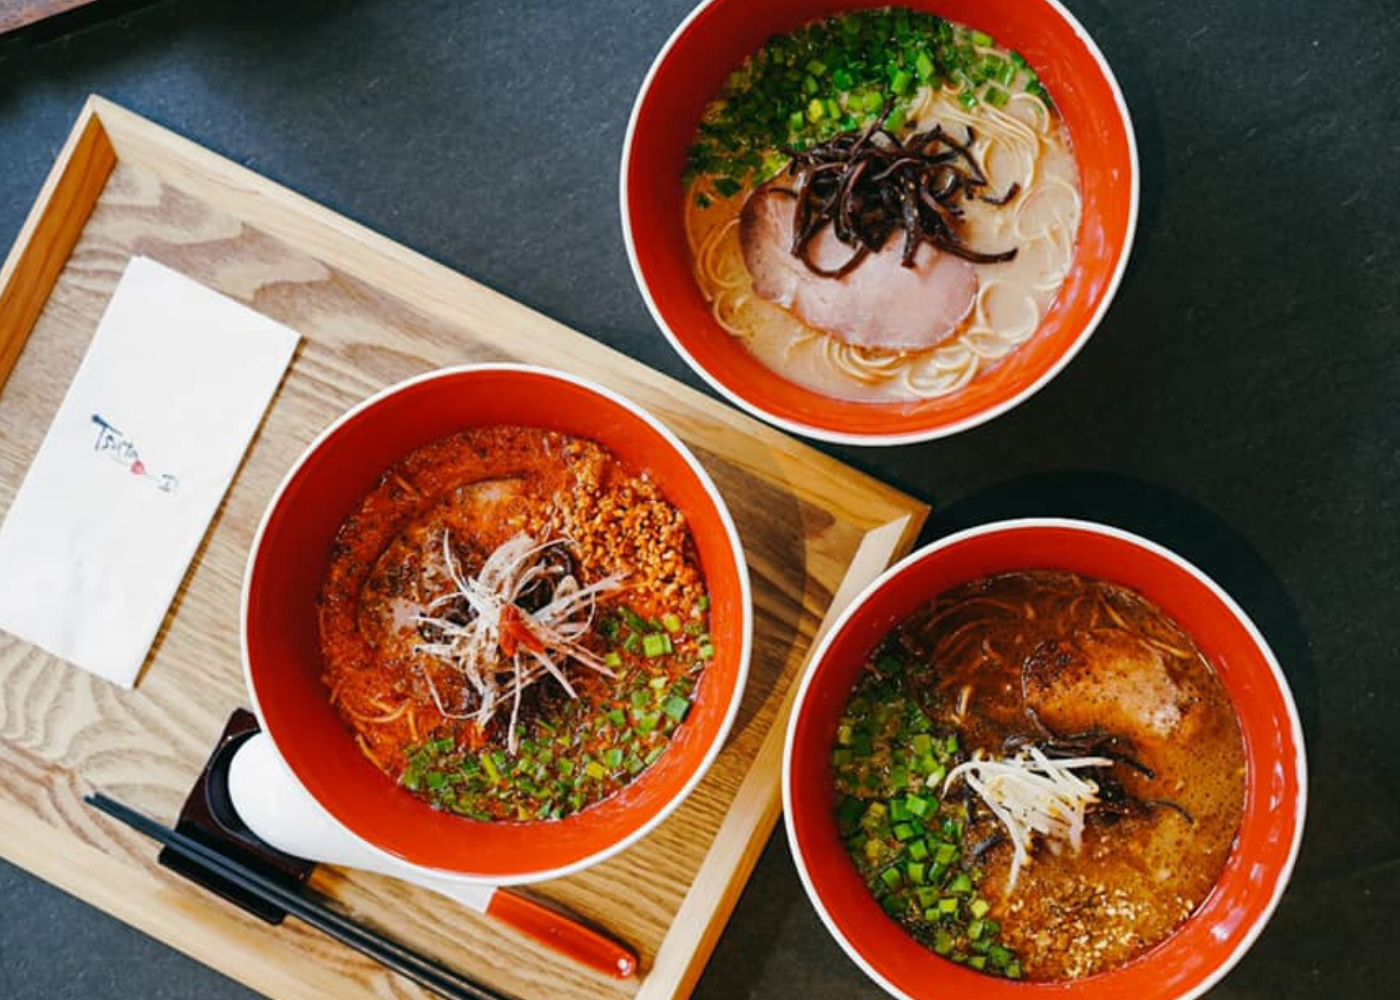 Best ramen in Singapore: Top places to eat a hearty bowl of Japanese noodles